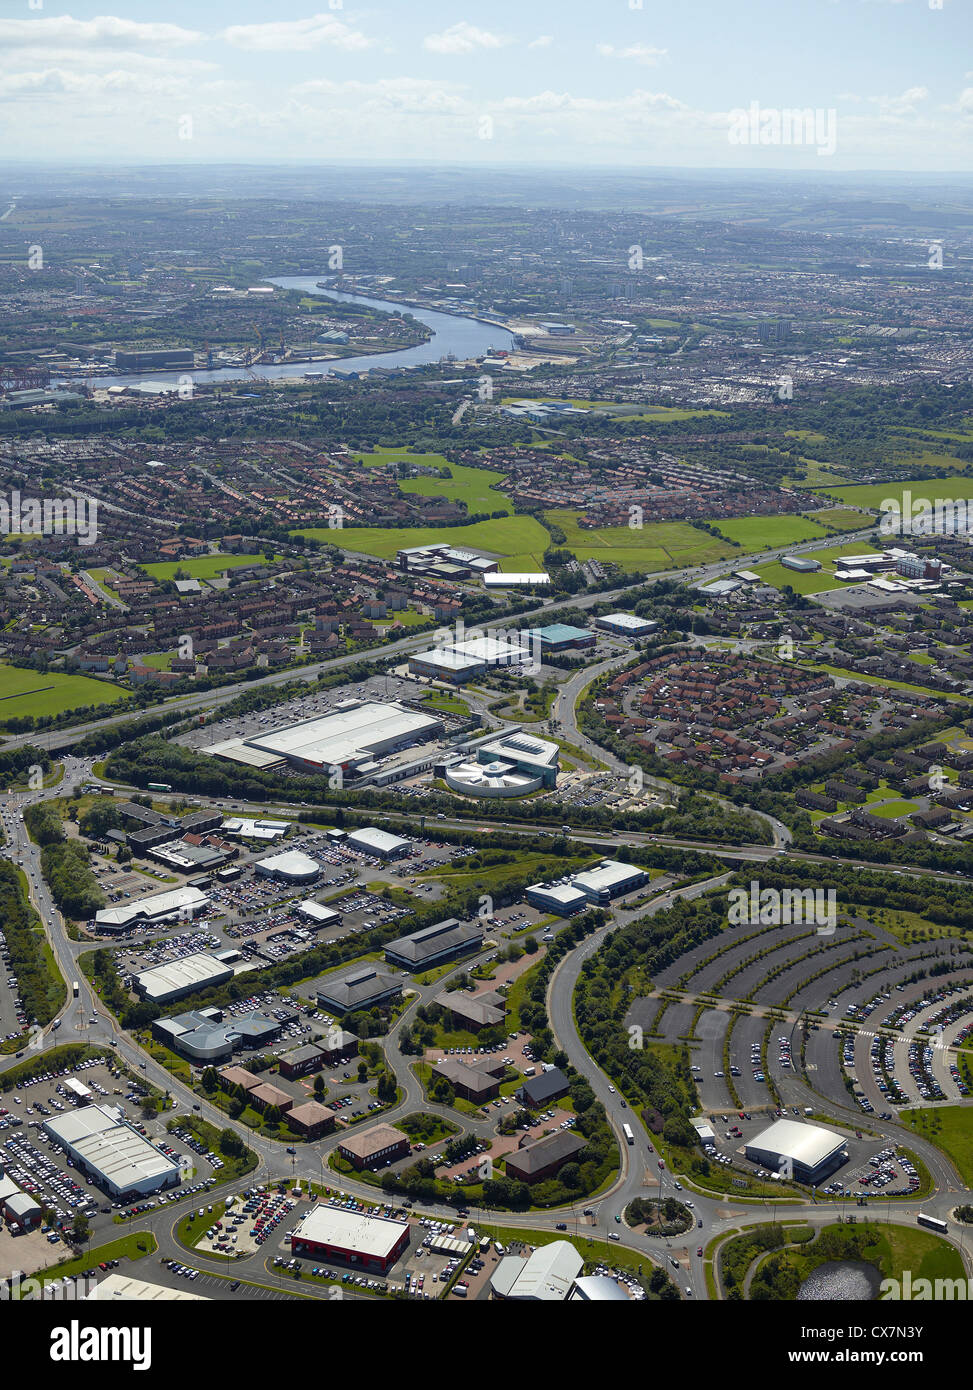 Silverlink business area, Newcastle upon Tyne, North East England, UK, river Tyne visible in the background - Stock Image